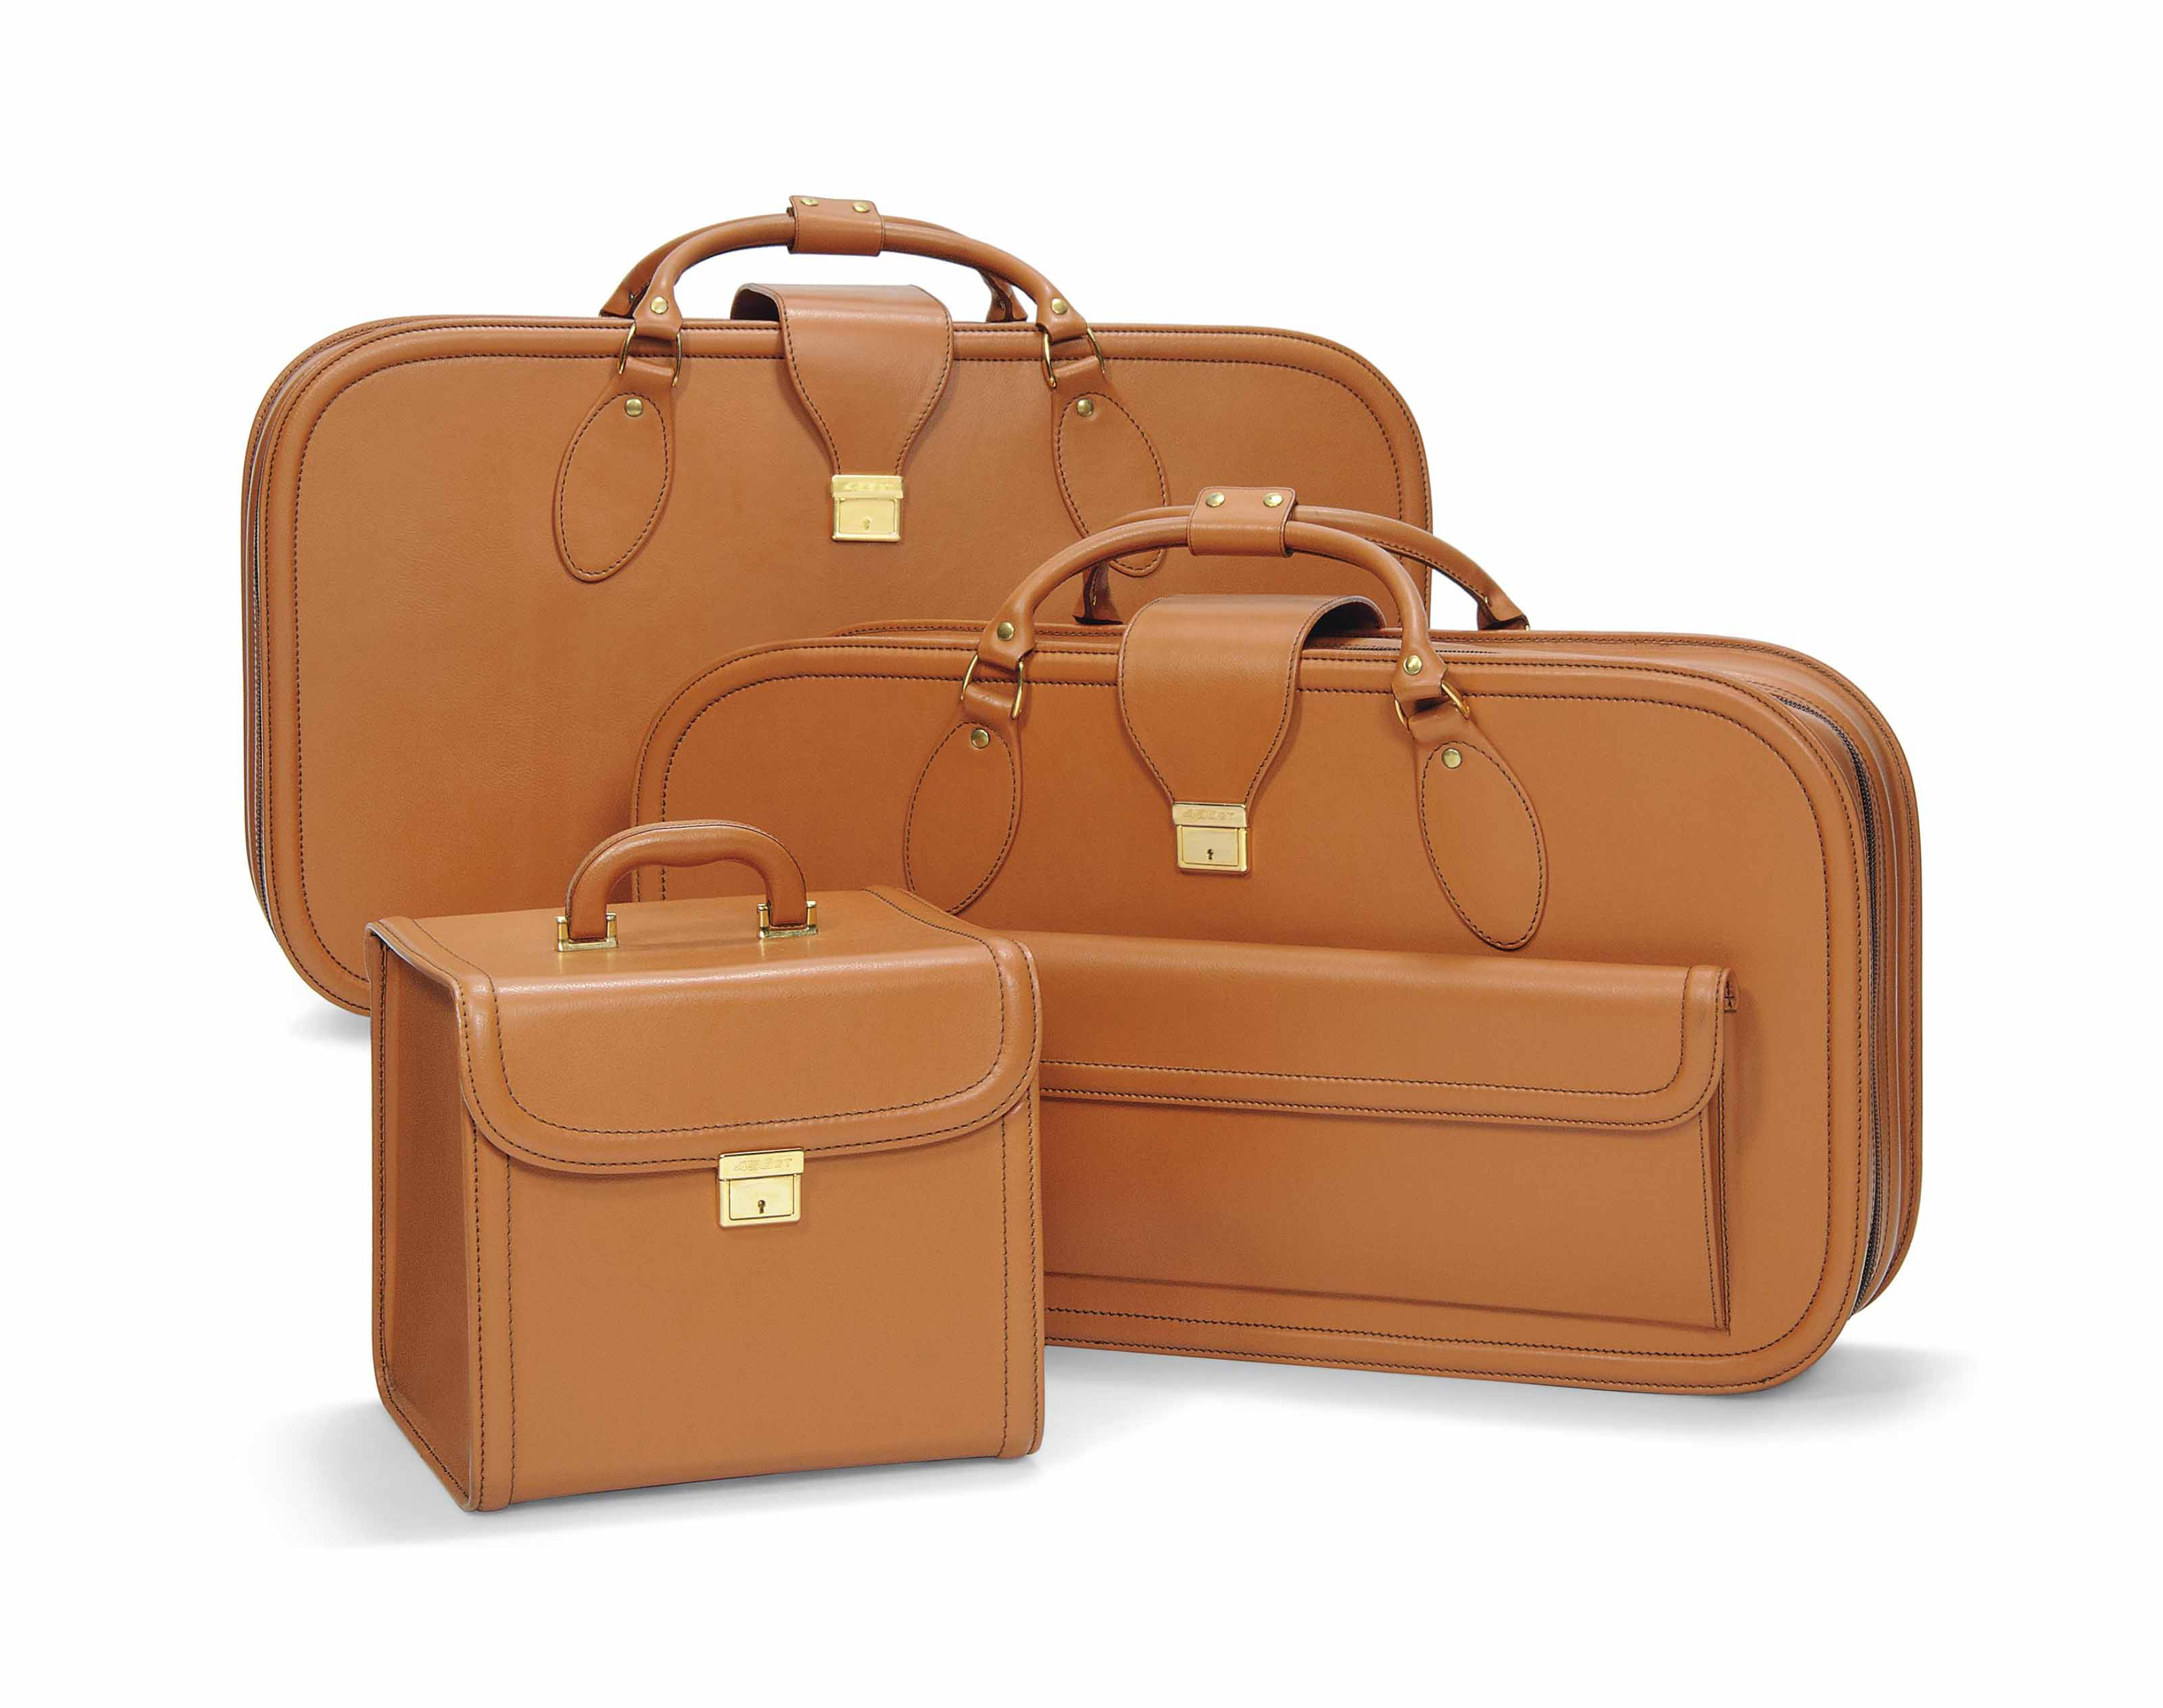 A Set Of Fitted Tan Leather Luggage For A Ferrari 456 Gt